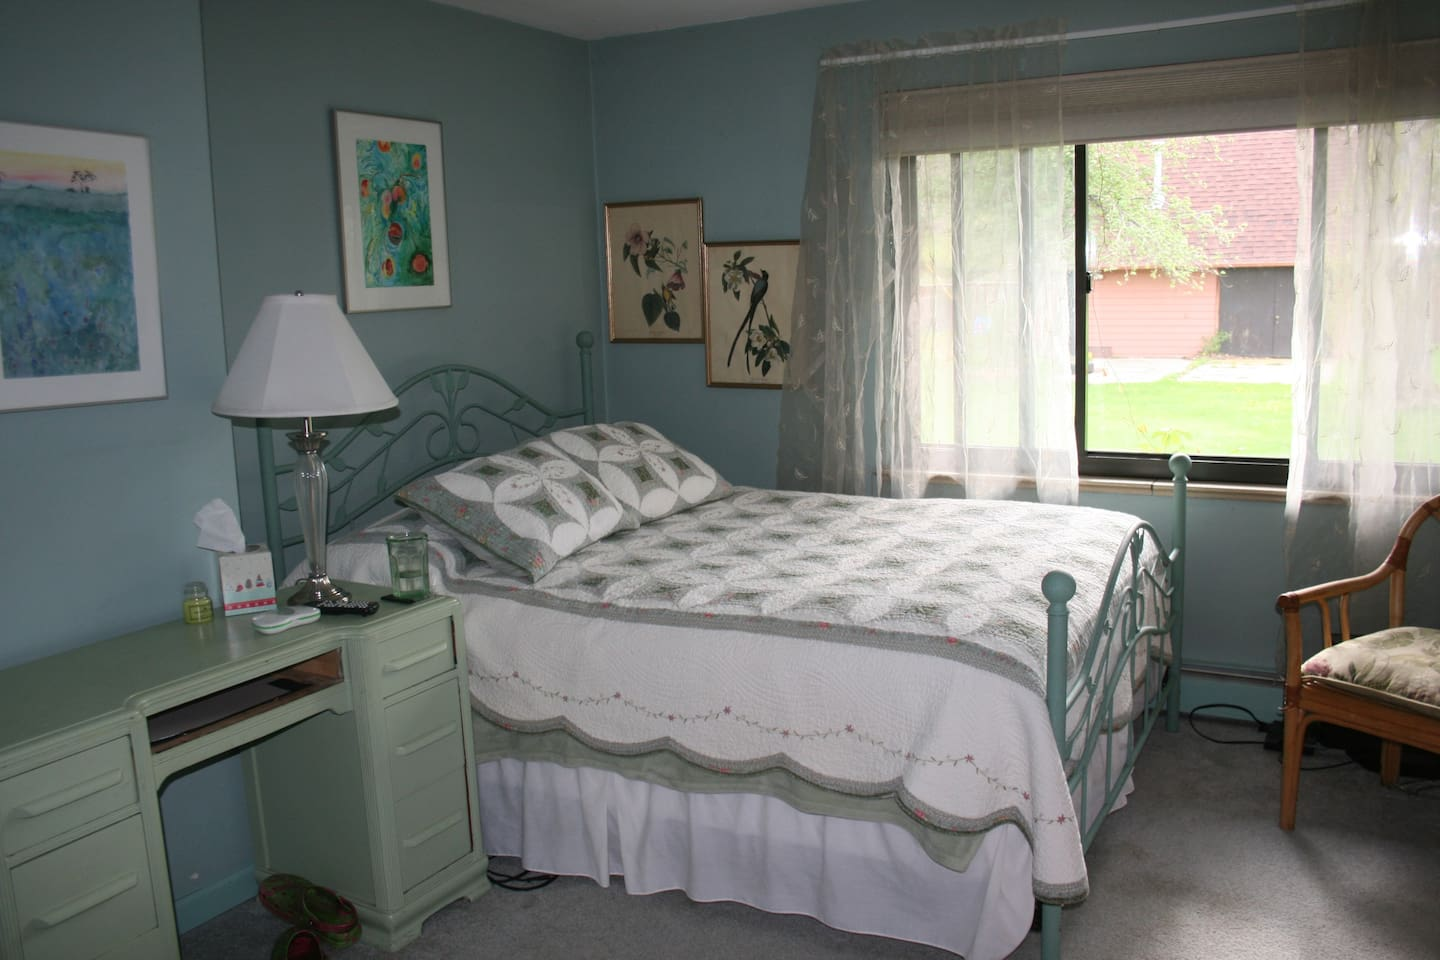 Queen bed, window overlooks the yard to the west.